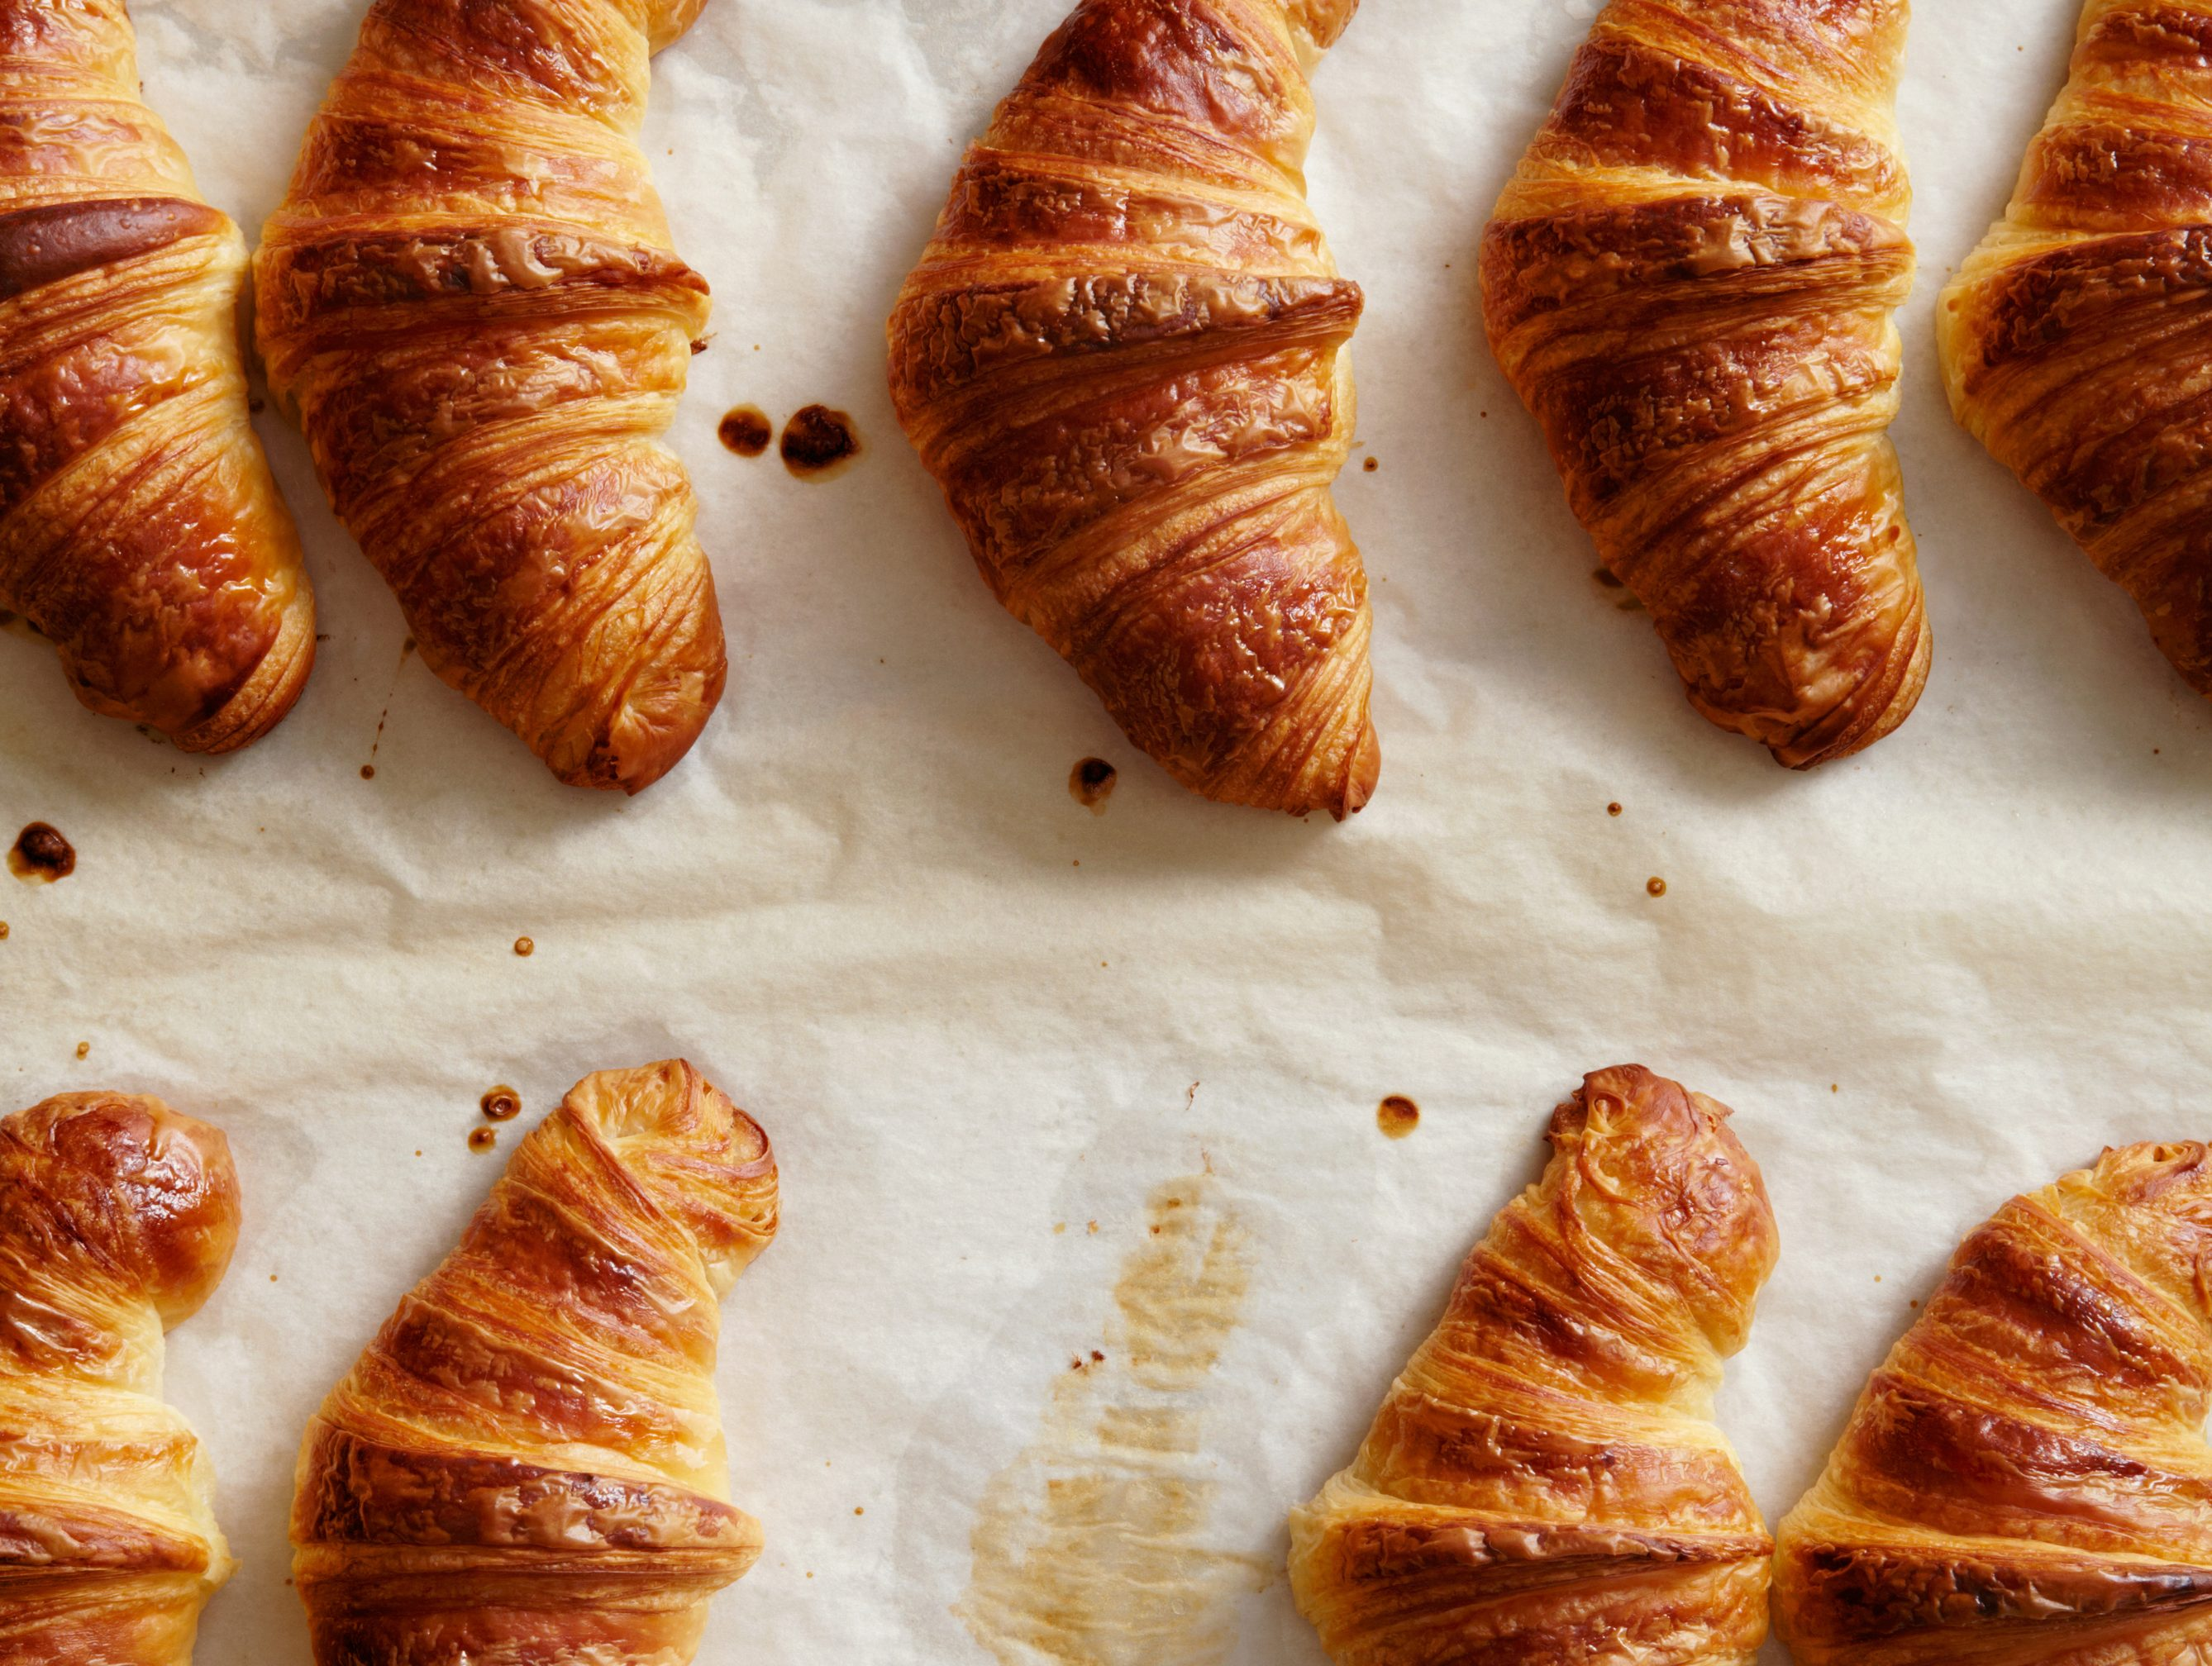 Bad news for your breakfast: Croissants are set to get more expensive